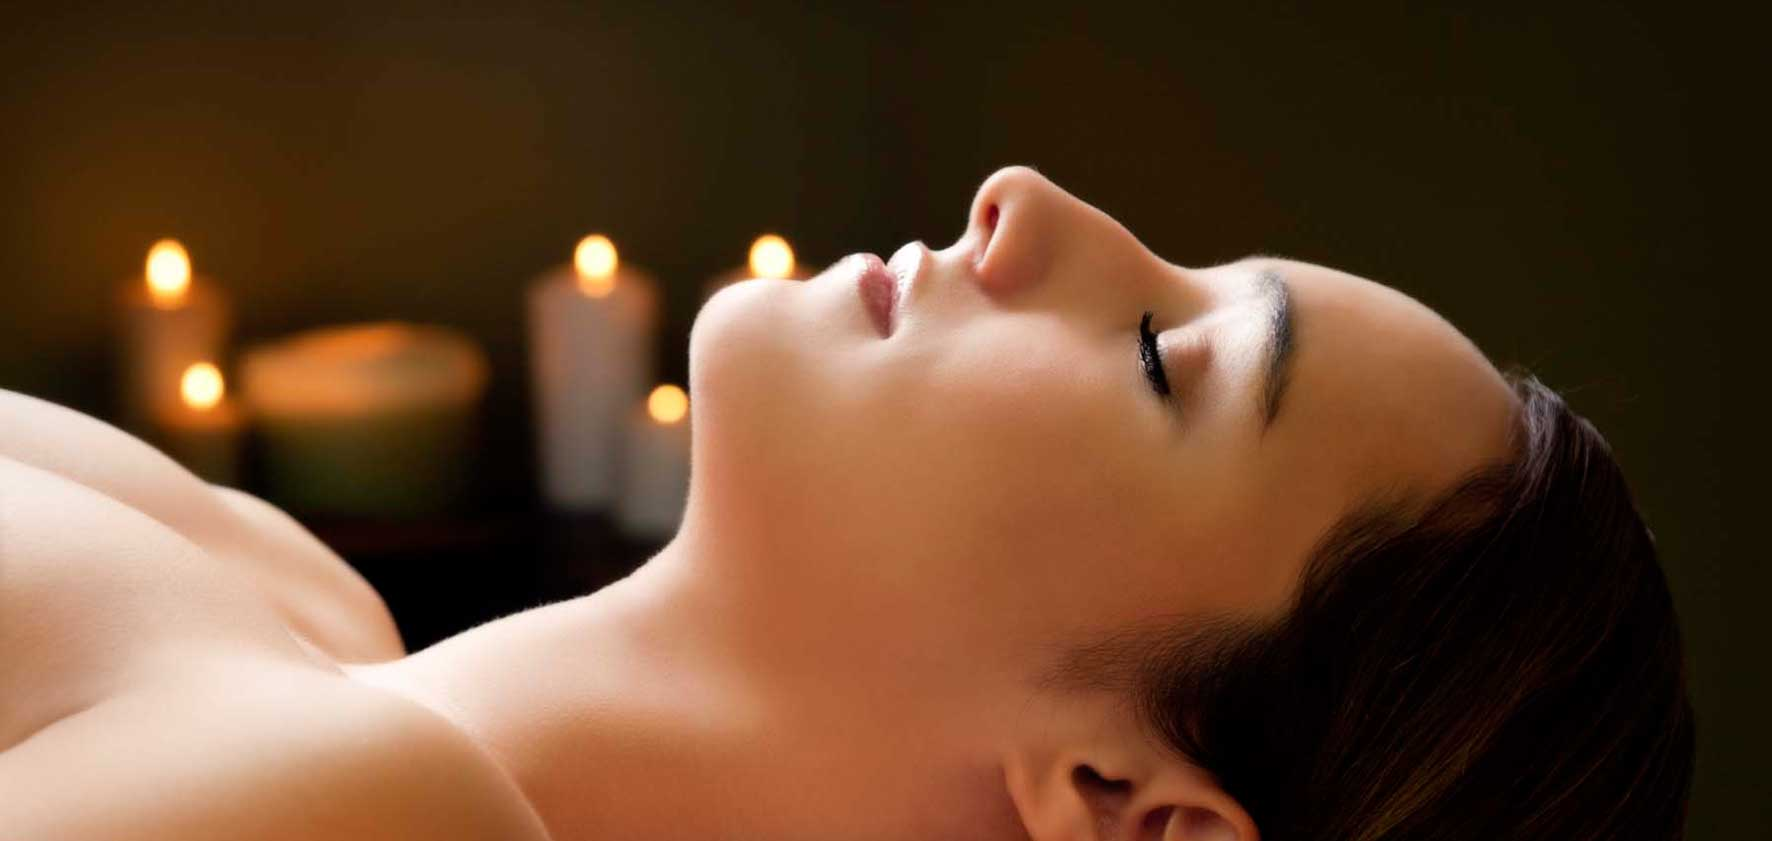 Relax and unwind with Holistic Full Body Massage